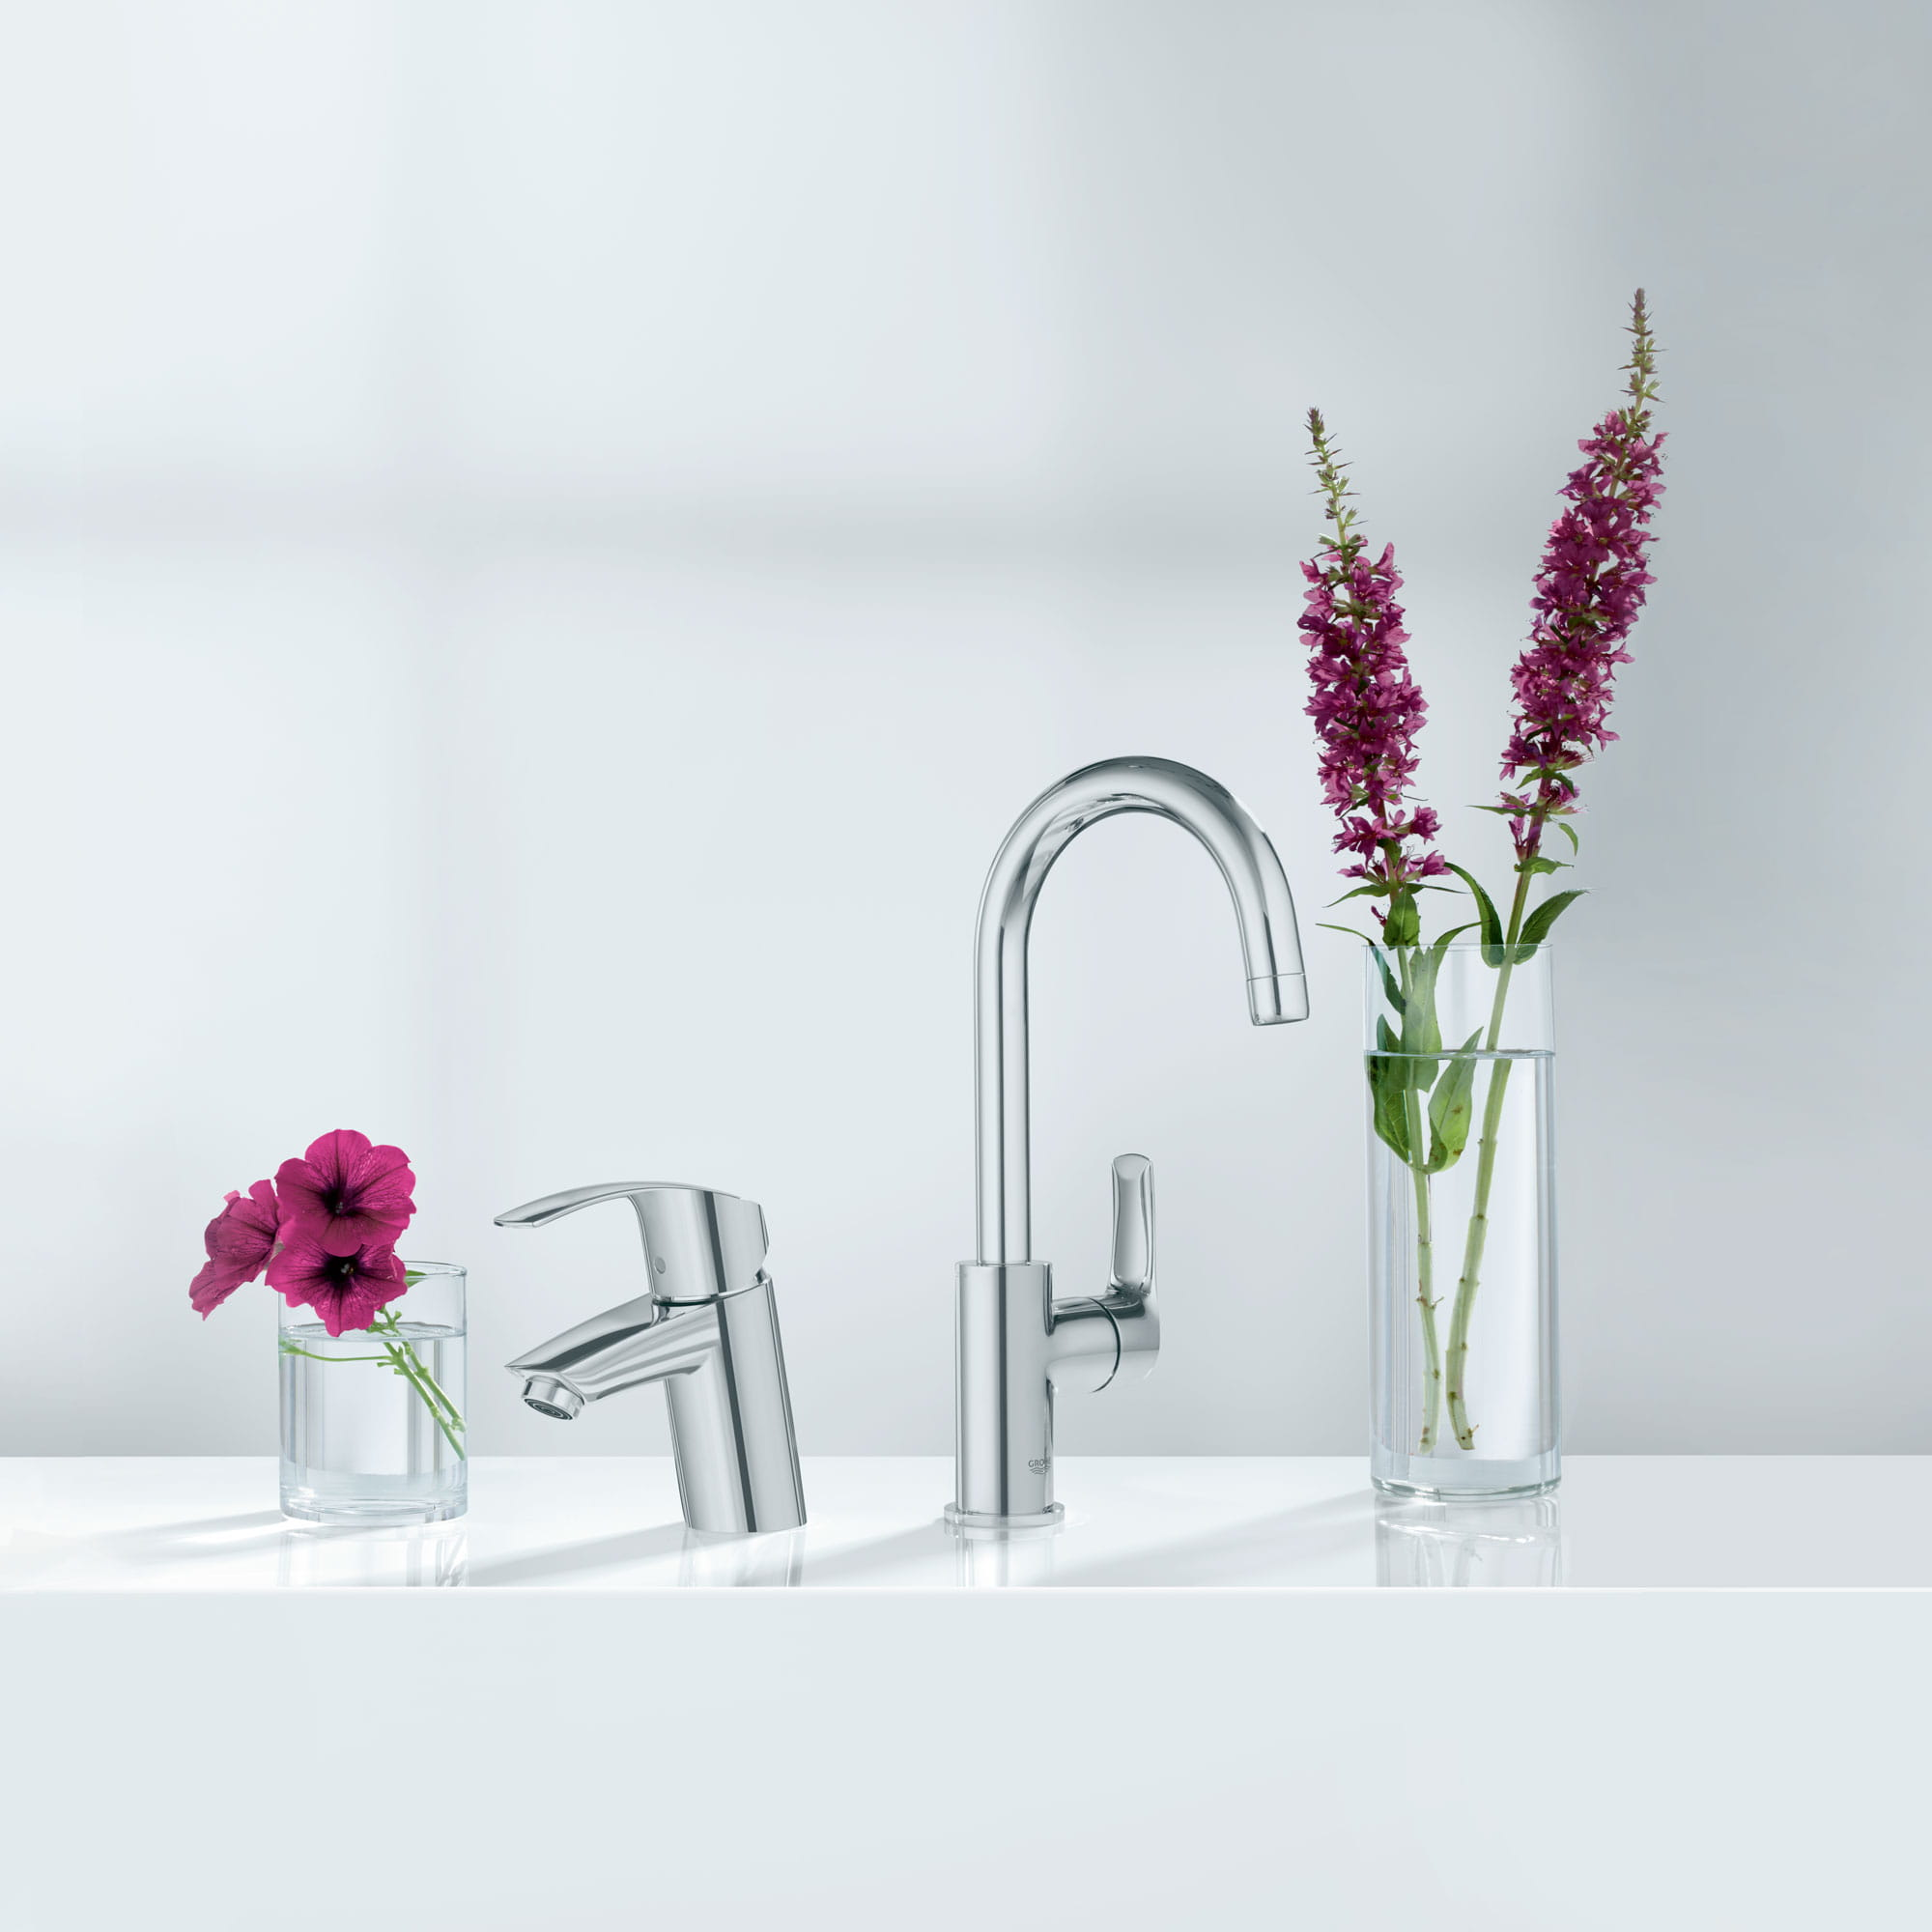 A pair of Grohe faucets next to vases filled with flowers.